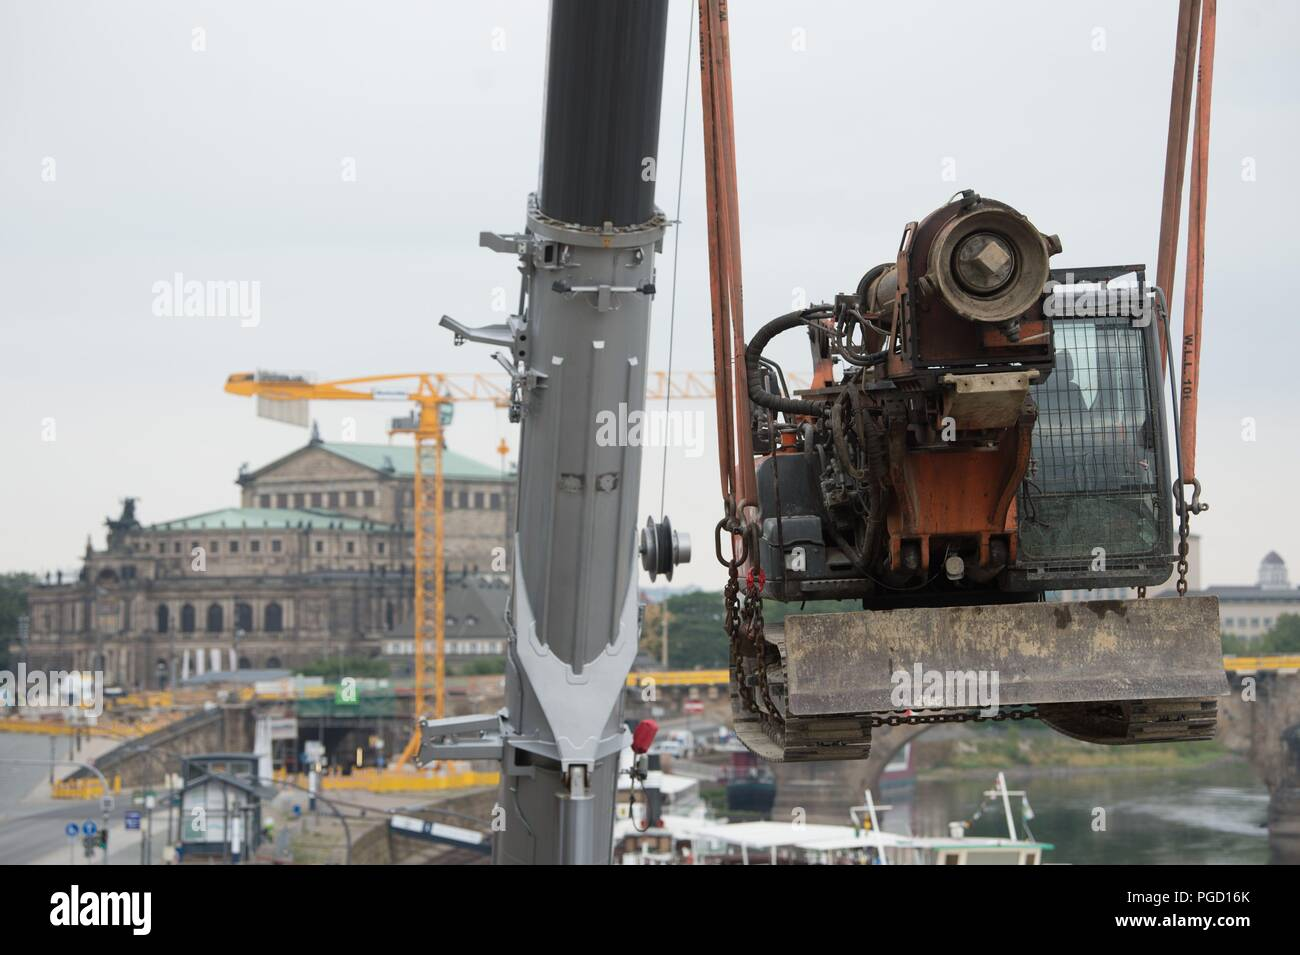 Terrasse Opera Dresden Germany 25th Aug 2018 A Construction Machine Is Lifted